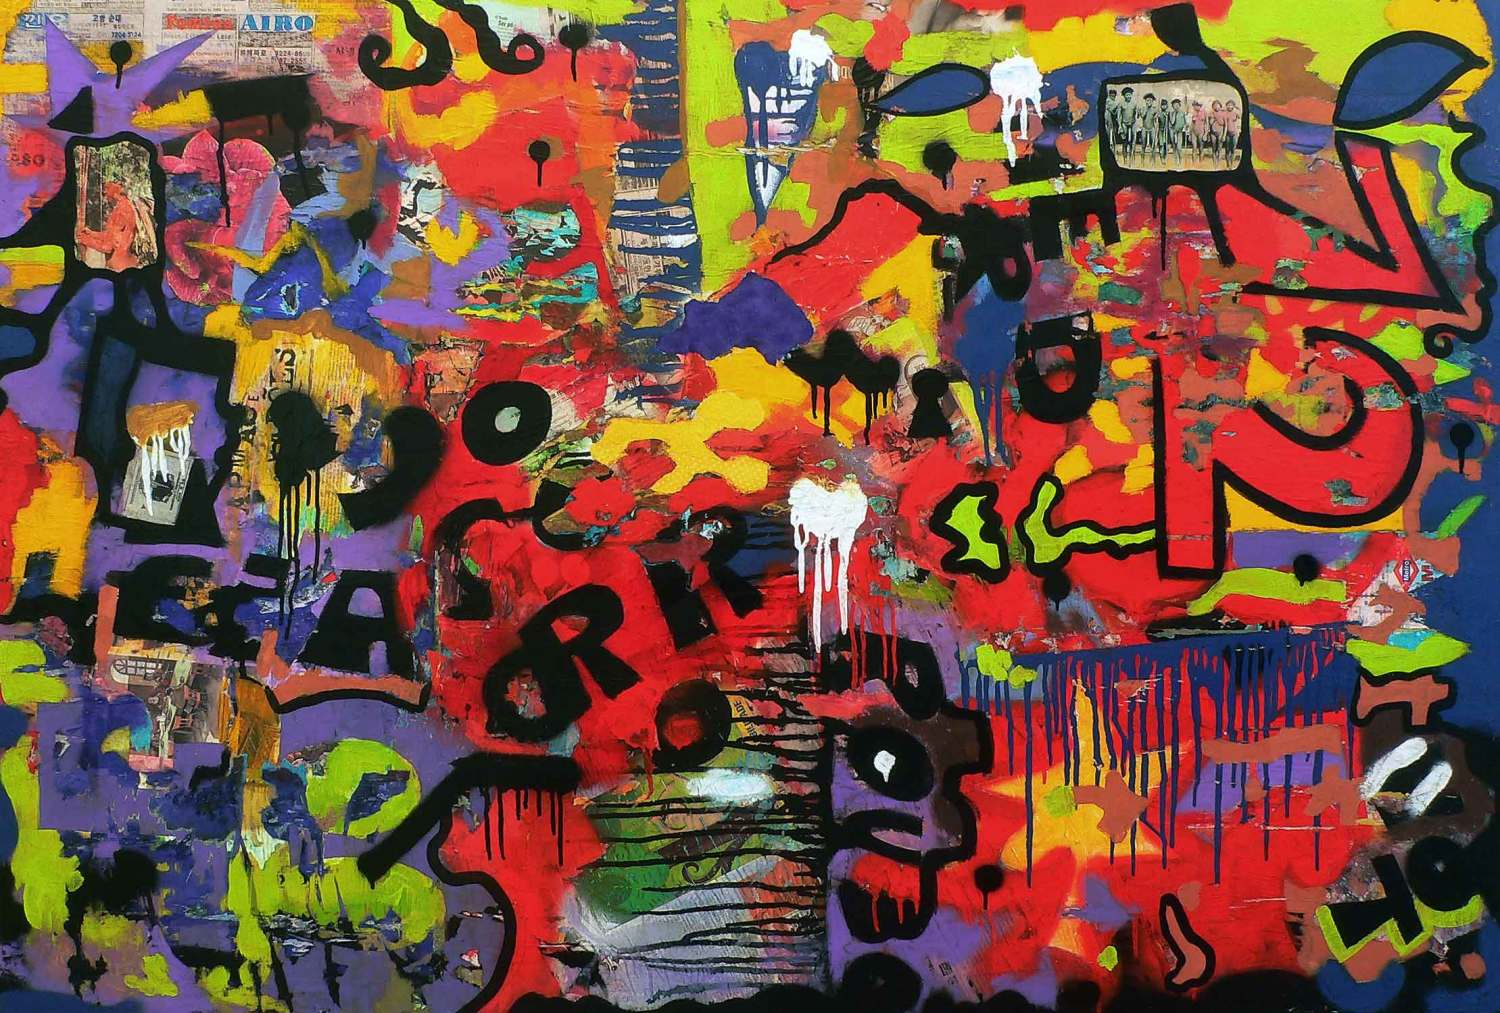 yes or no - 115 x 170 cm - acrylic, spray paint and collage on canvas - 2009